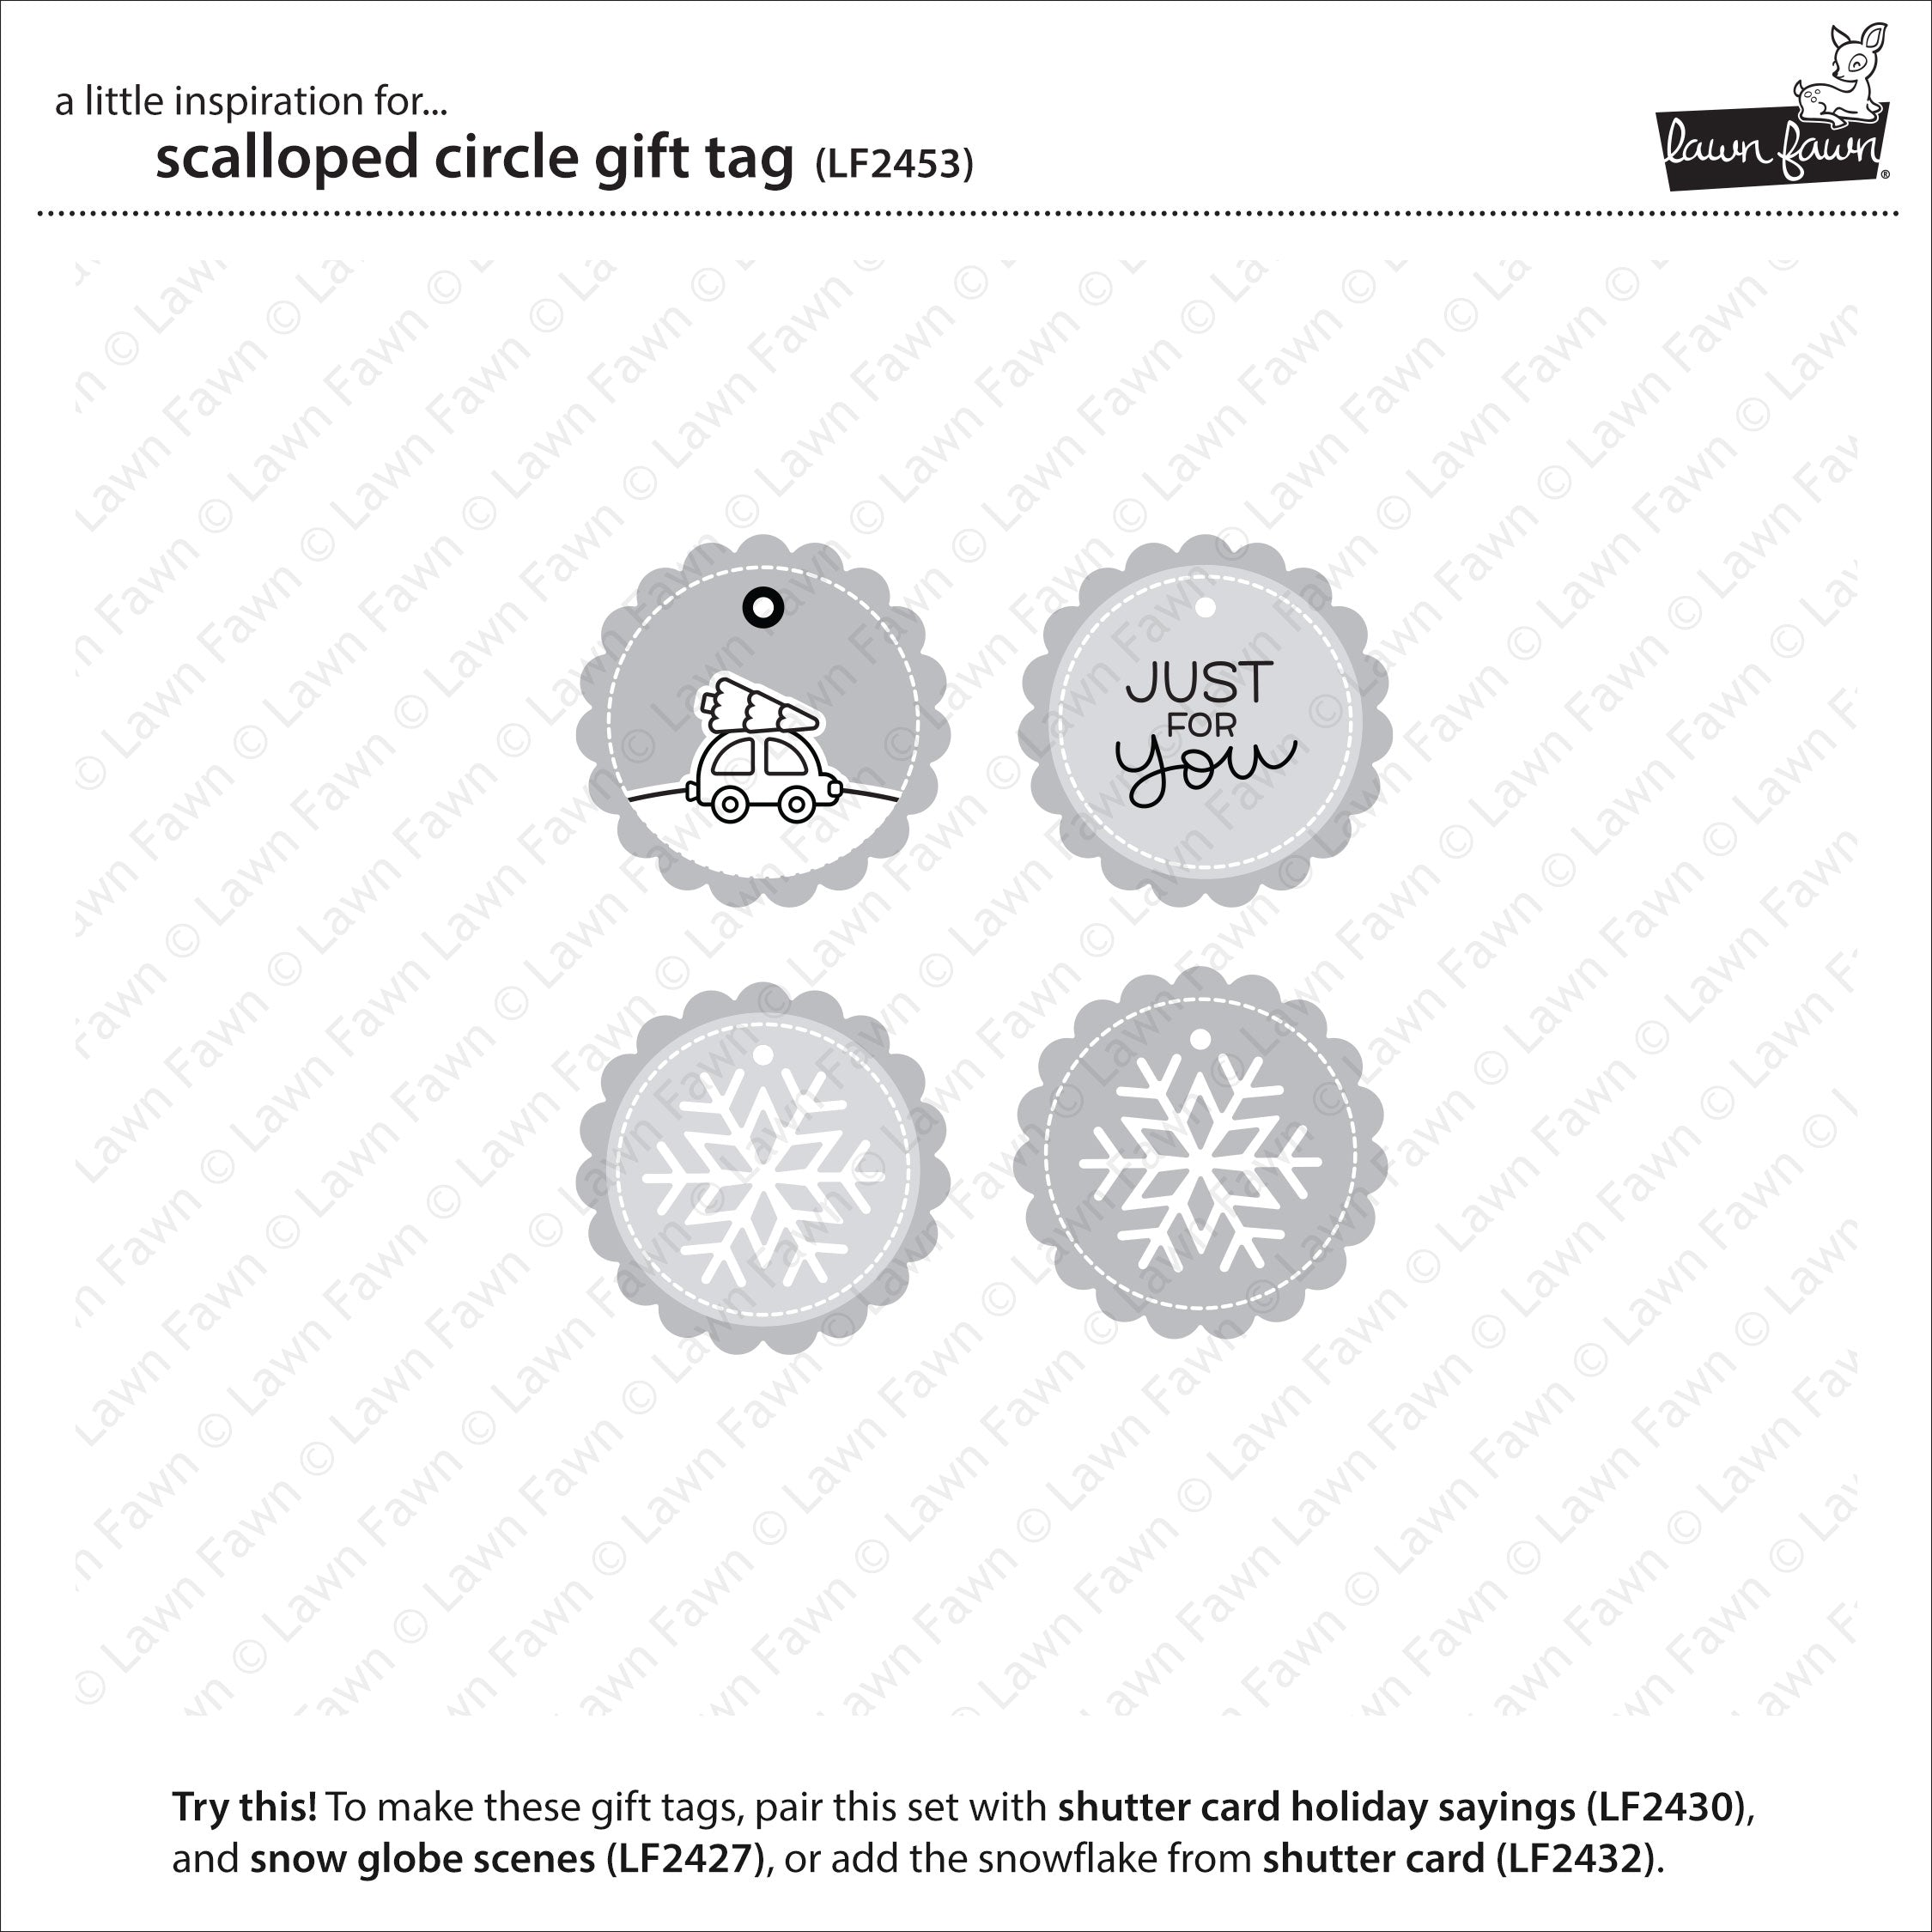 scalloped circle gift tag